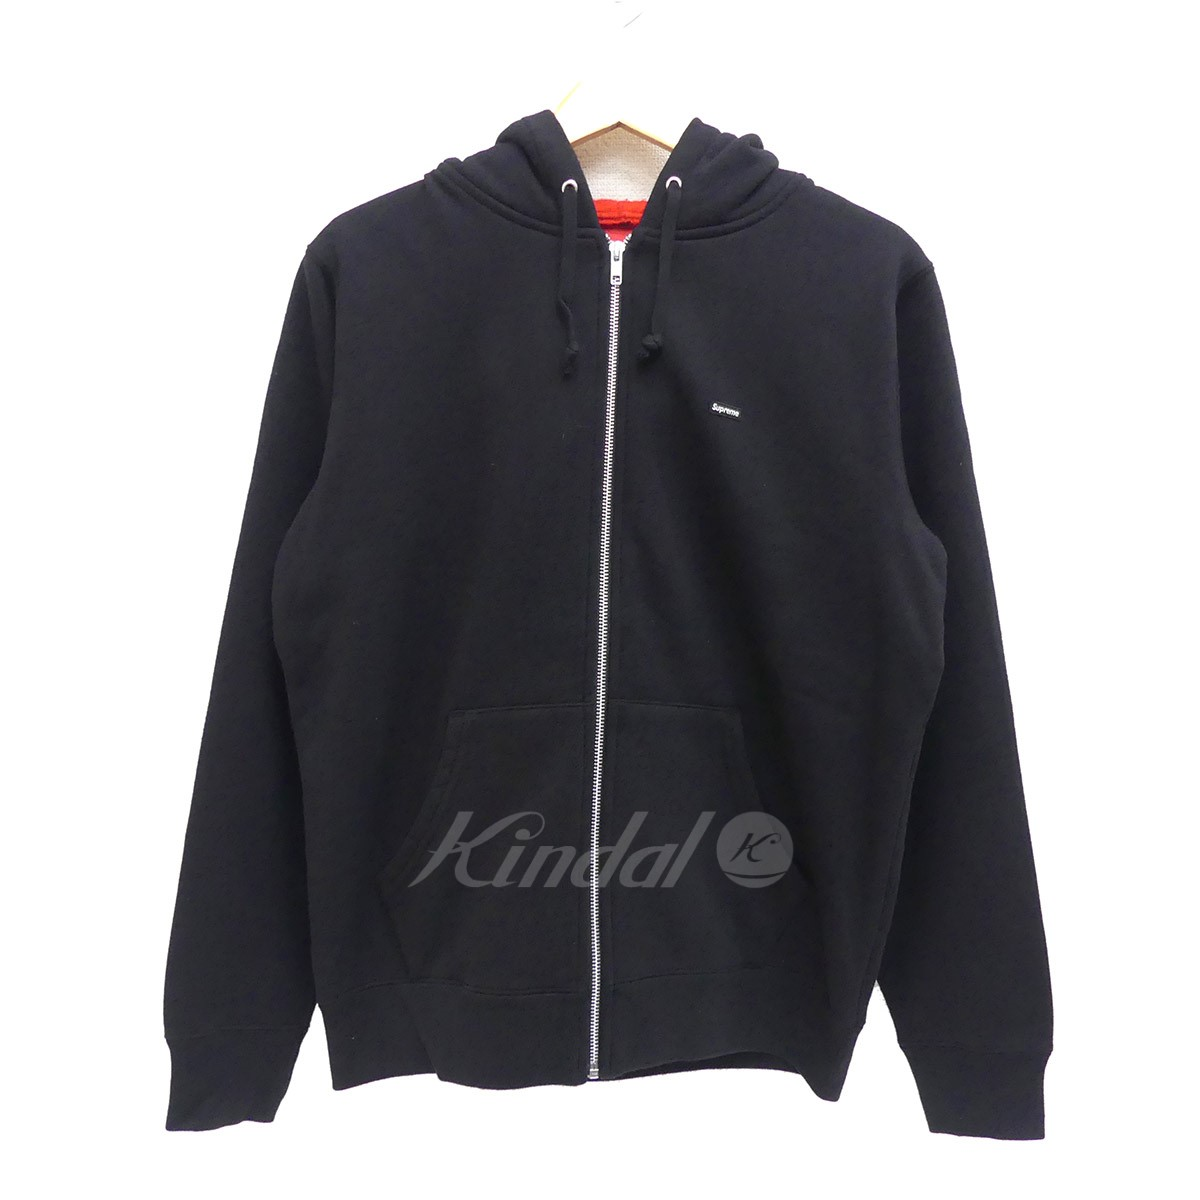 【中古】SUPREME Small Box Logo Zip Up Hooded Sweatshirt 2018SS ブラック サイズ:S 【送料無料】 【010718】(シュプリーム)